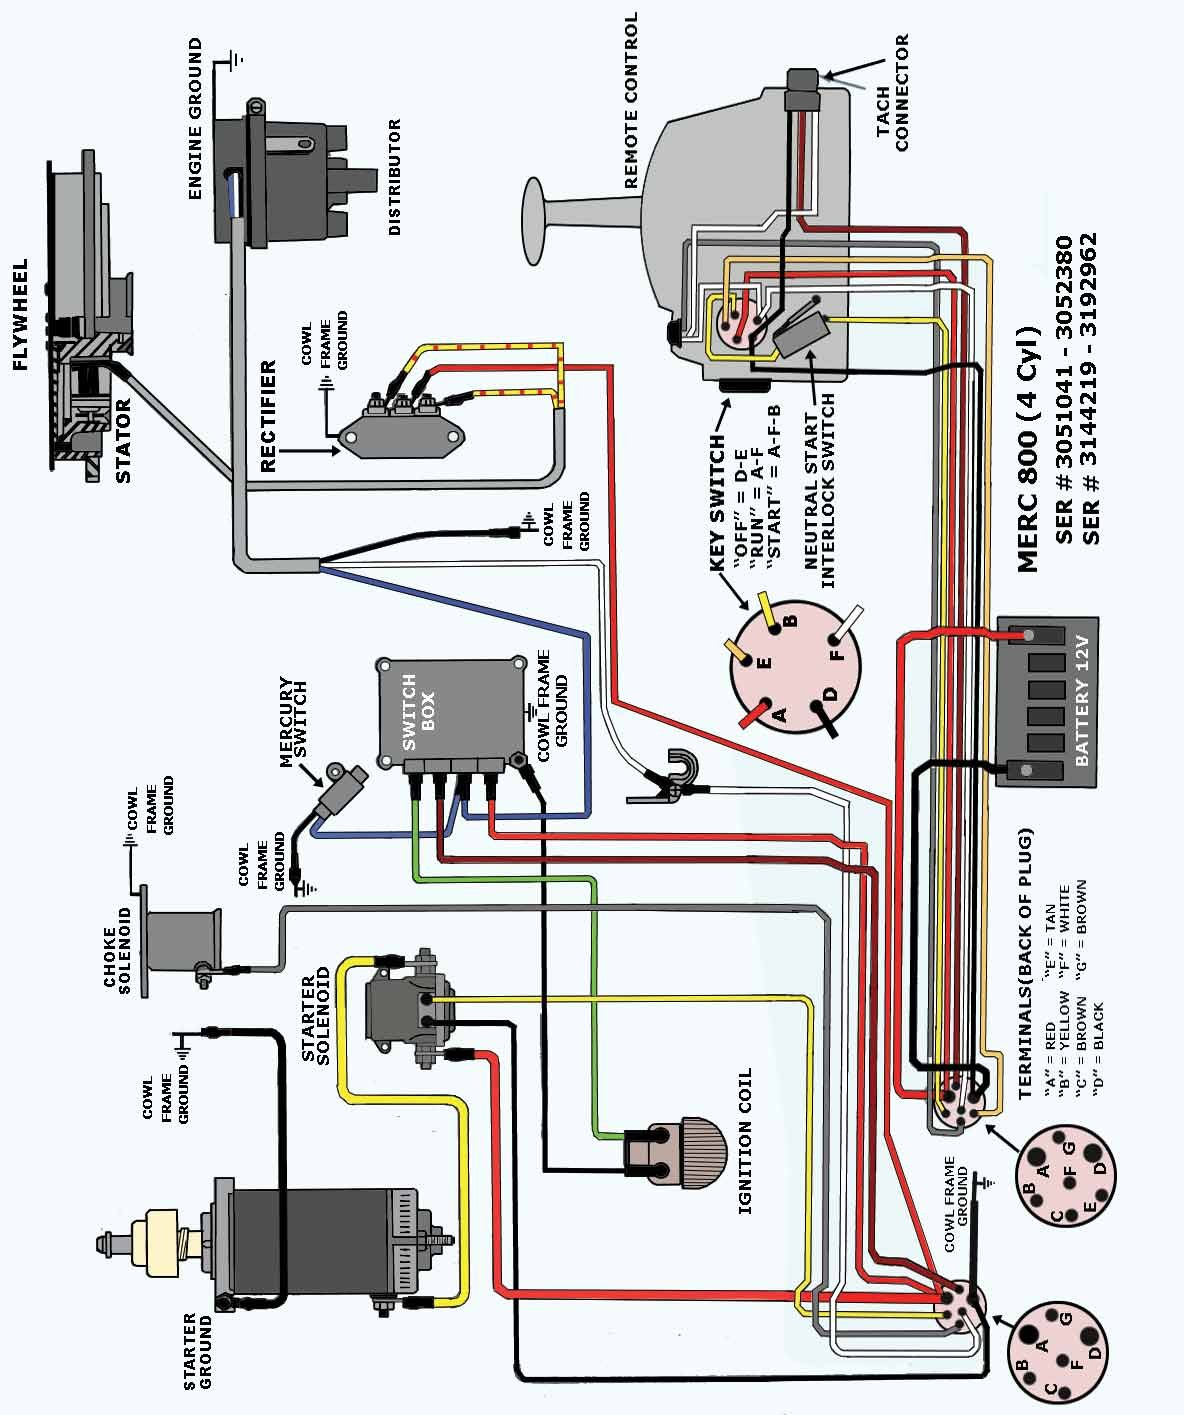 hight resolution of suzuki outboard ignition switch wiring diagram suzuki 110 wiring harness diagram suzuki gs1000 wiring diagram